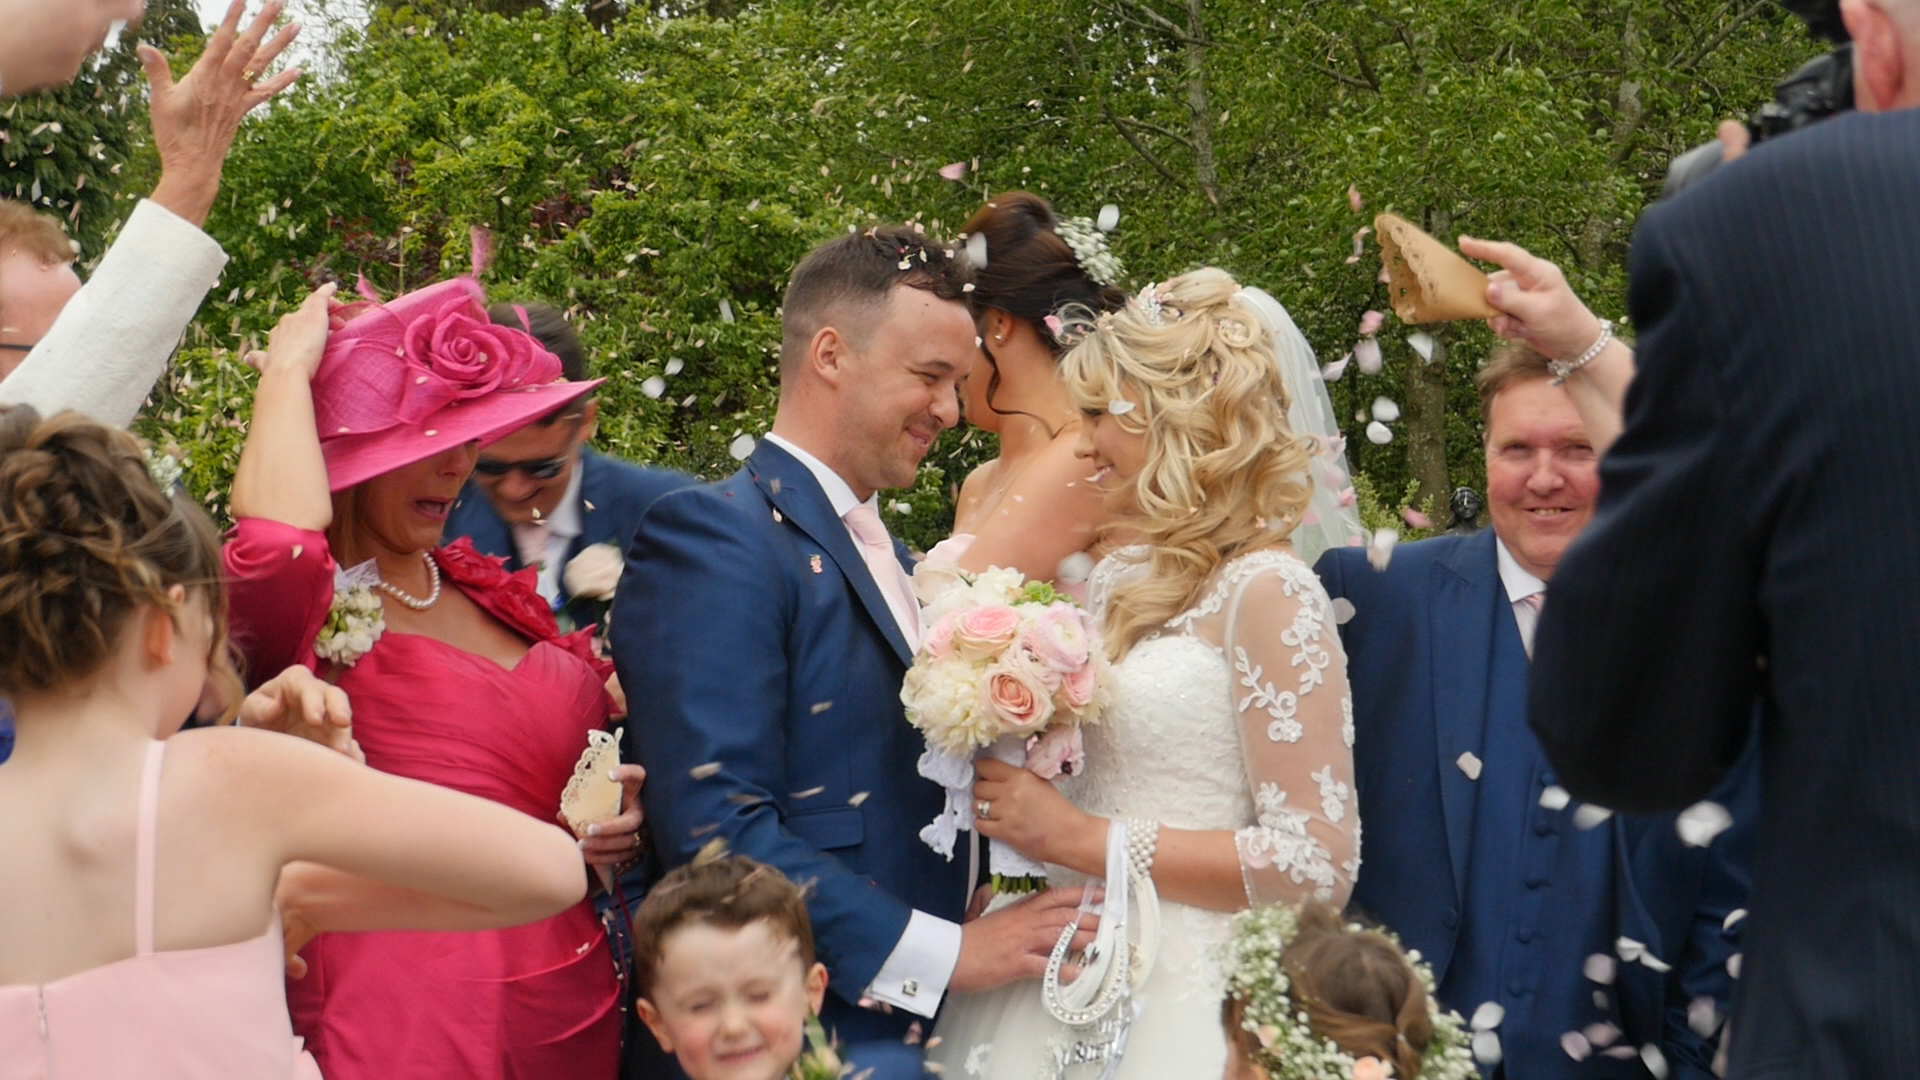 Wedding VIdeography - wedding videographers in UK, Midlands, Leeds, Northwest, Manchester